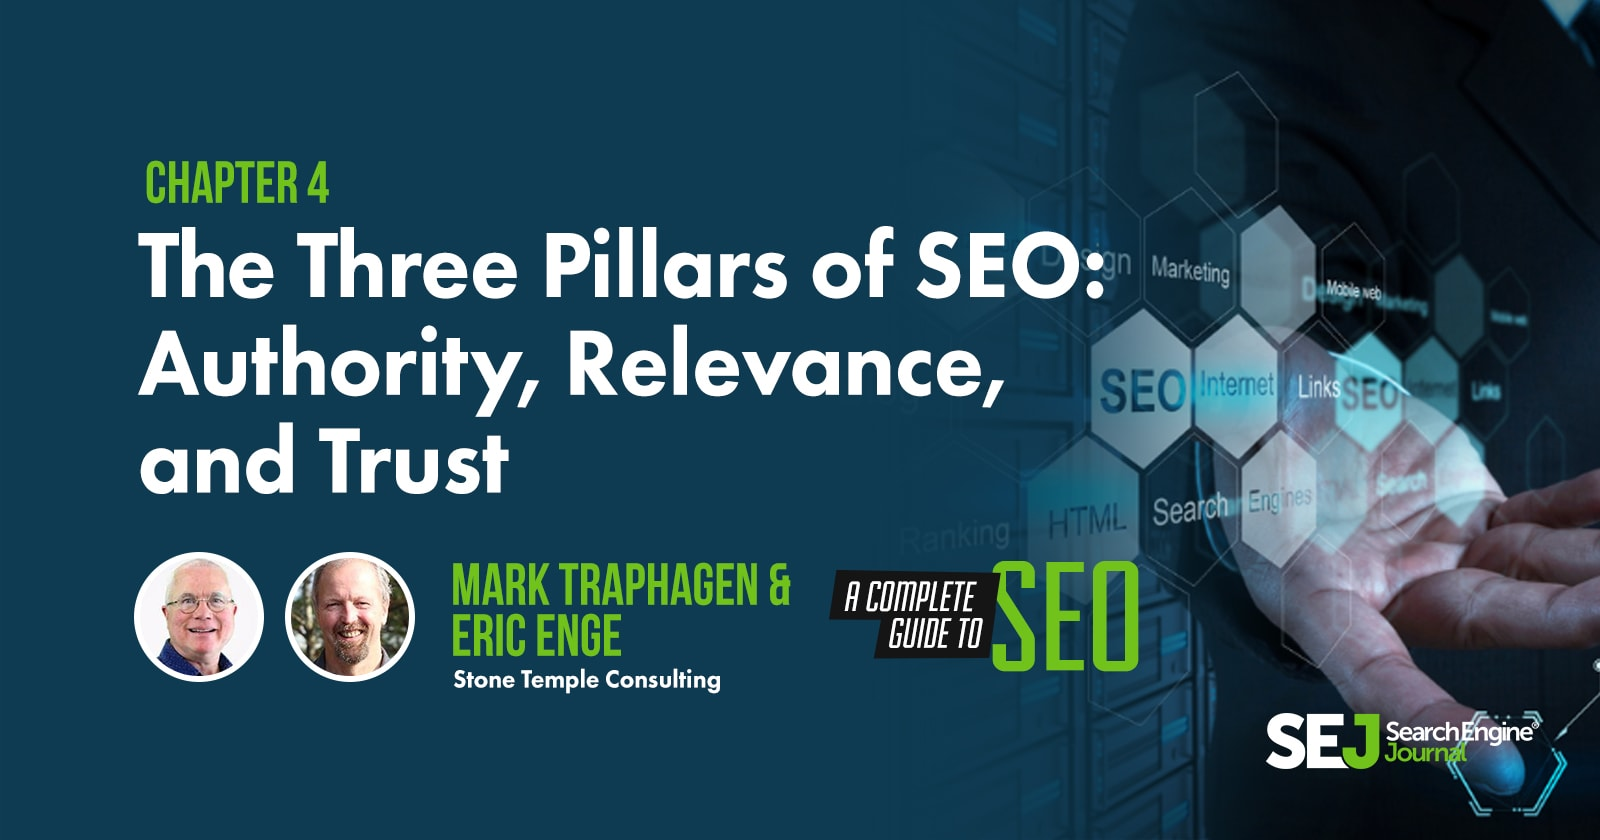 The Three Pillars of SEO: Authority, Relevance, and Trust